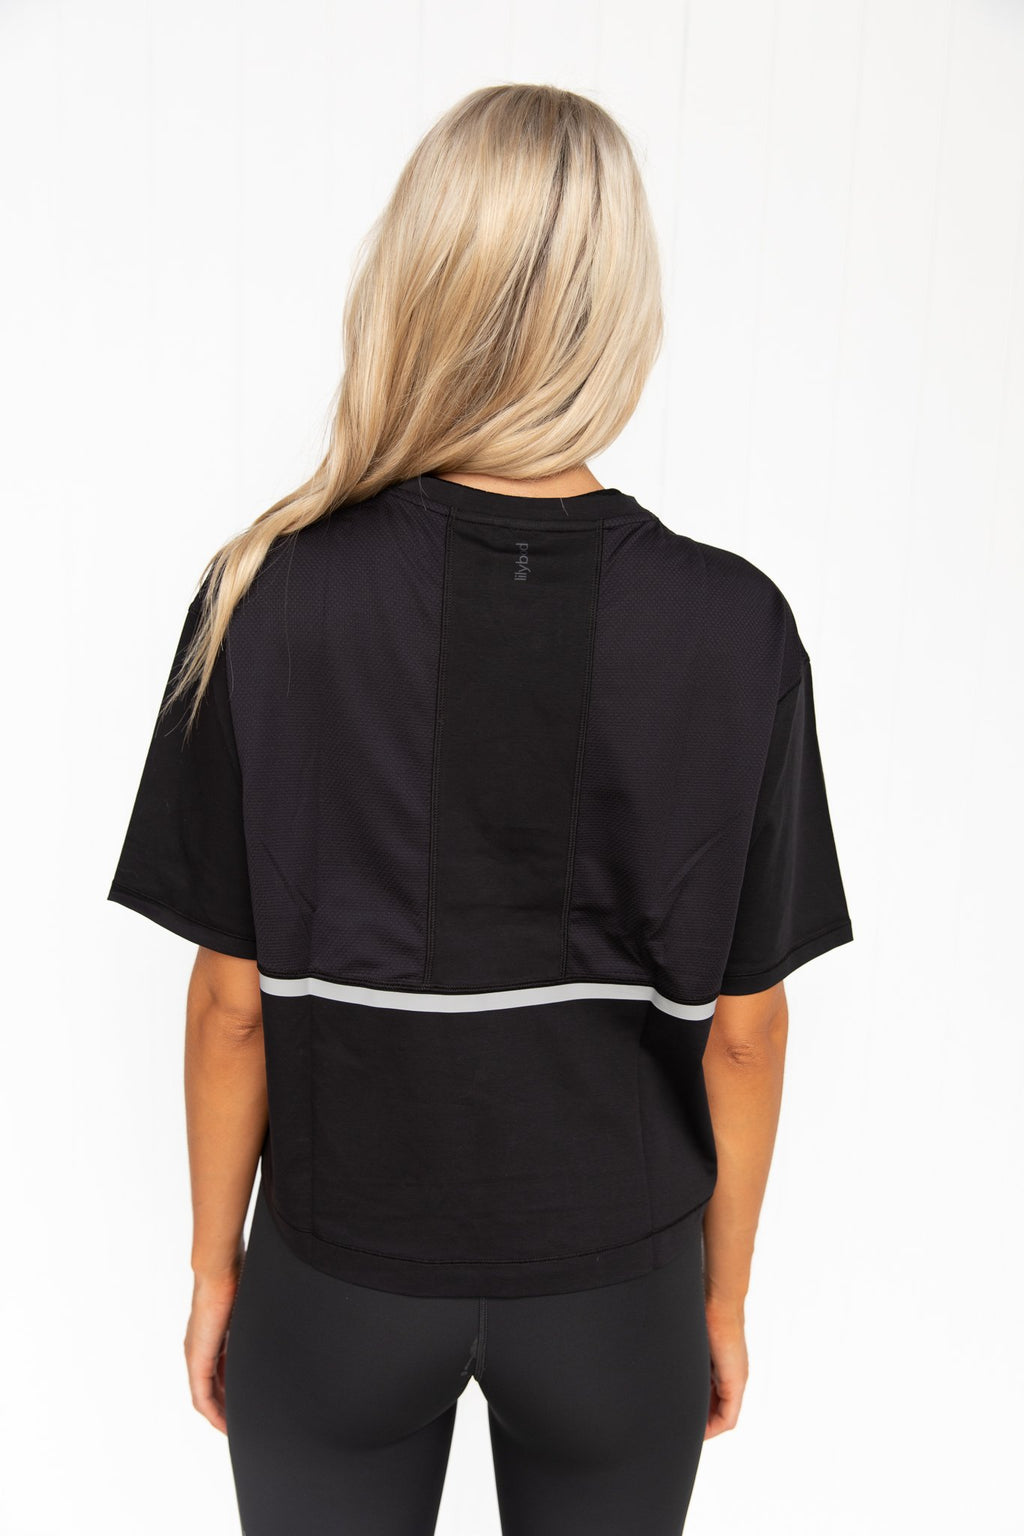 Yvette Graphite Black Crop Tech Tee - PURE DASH